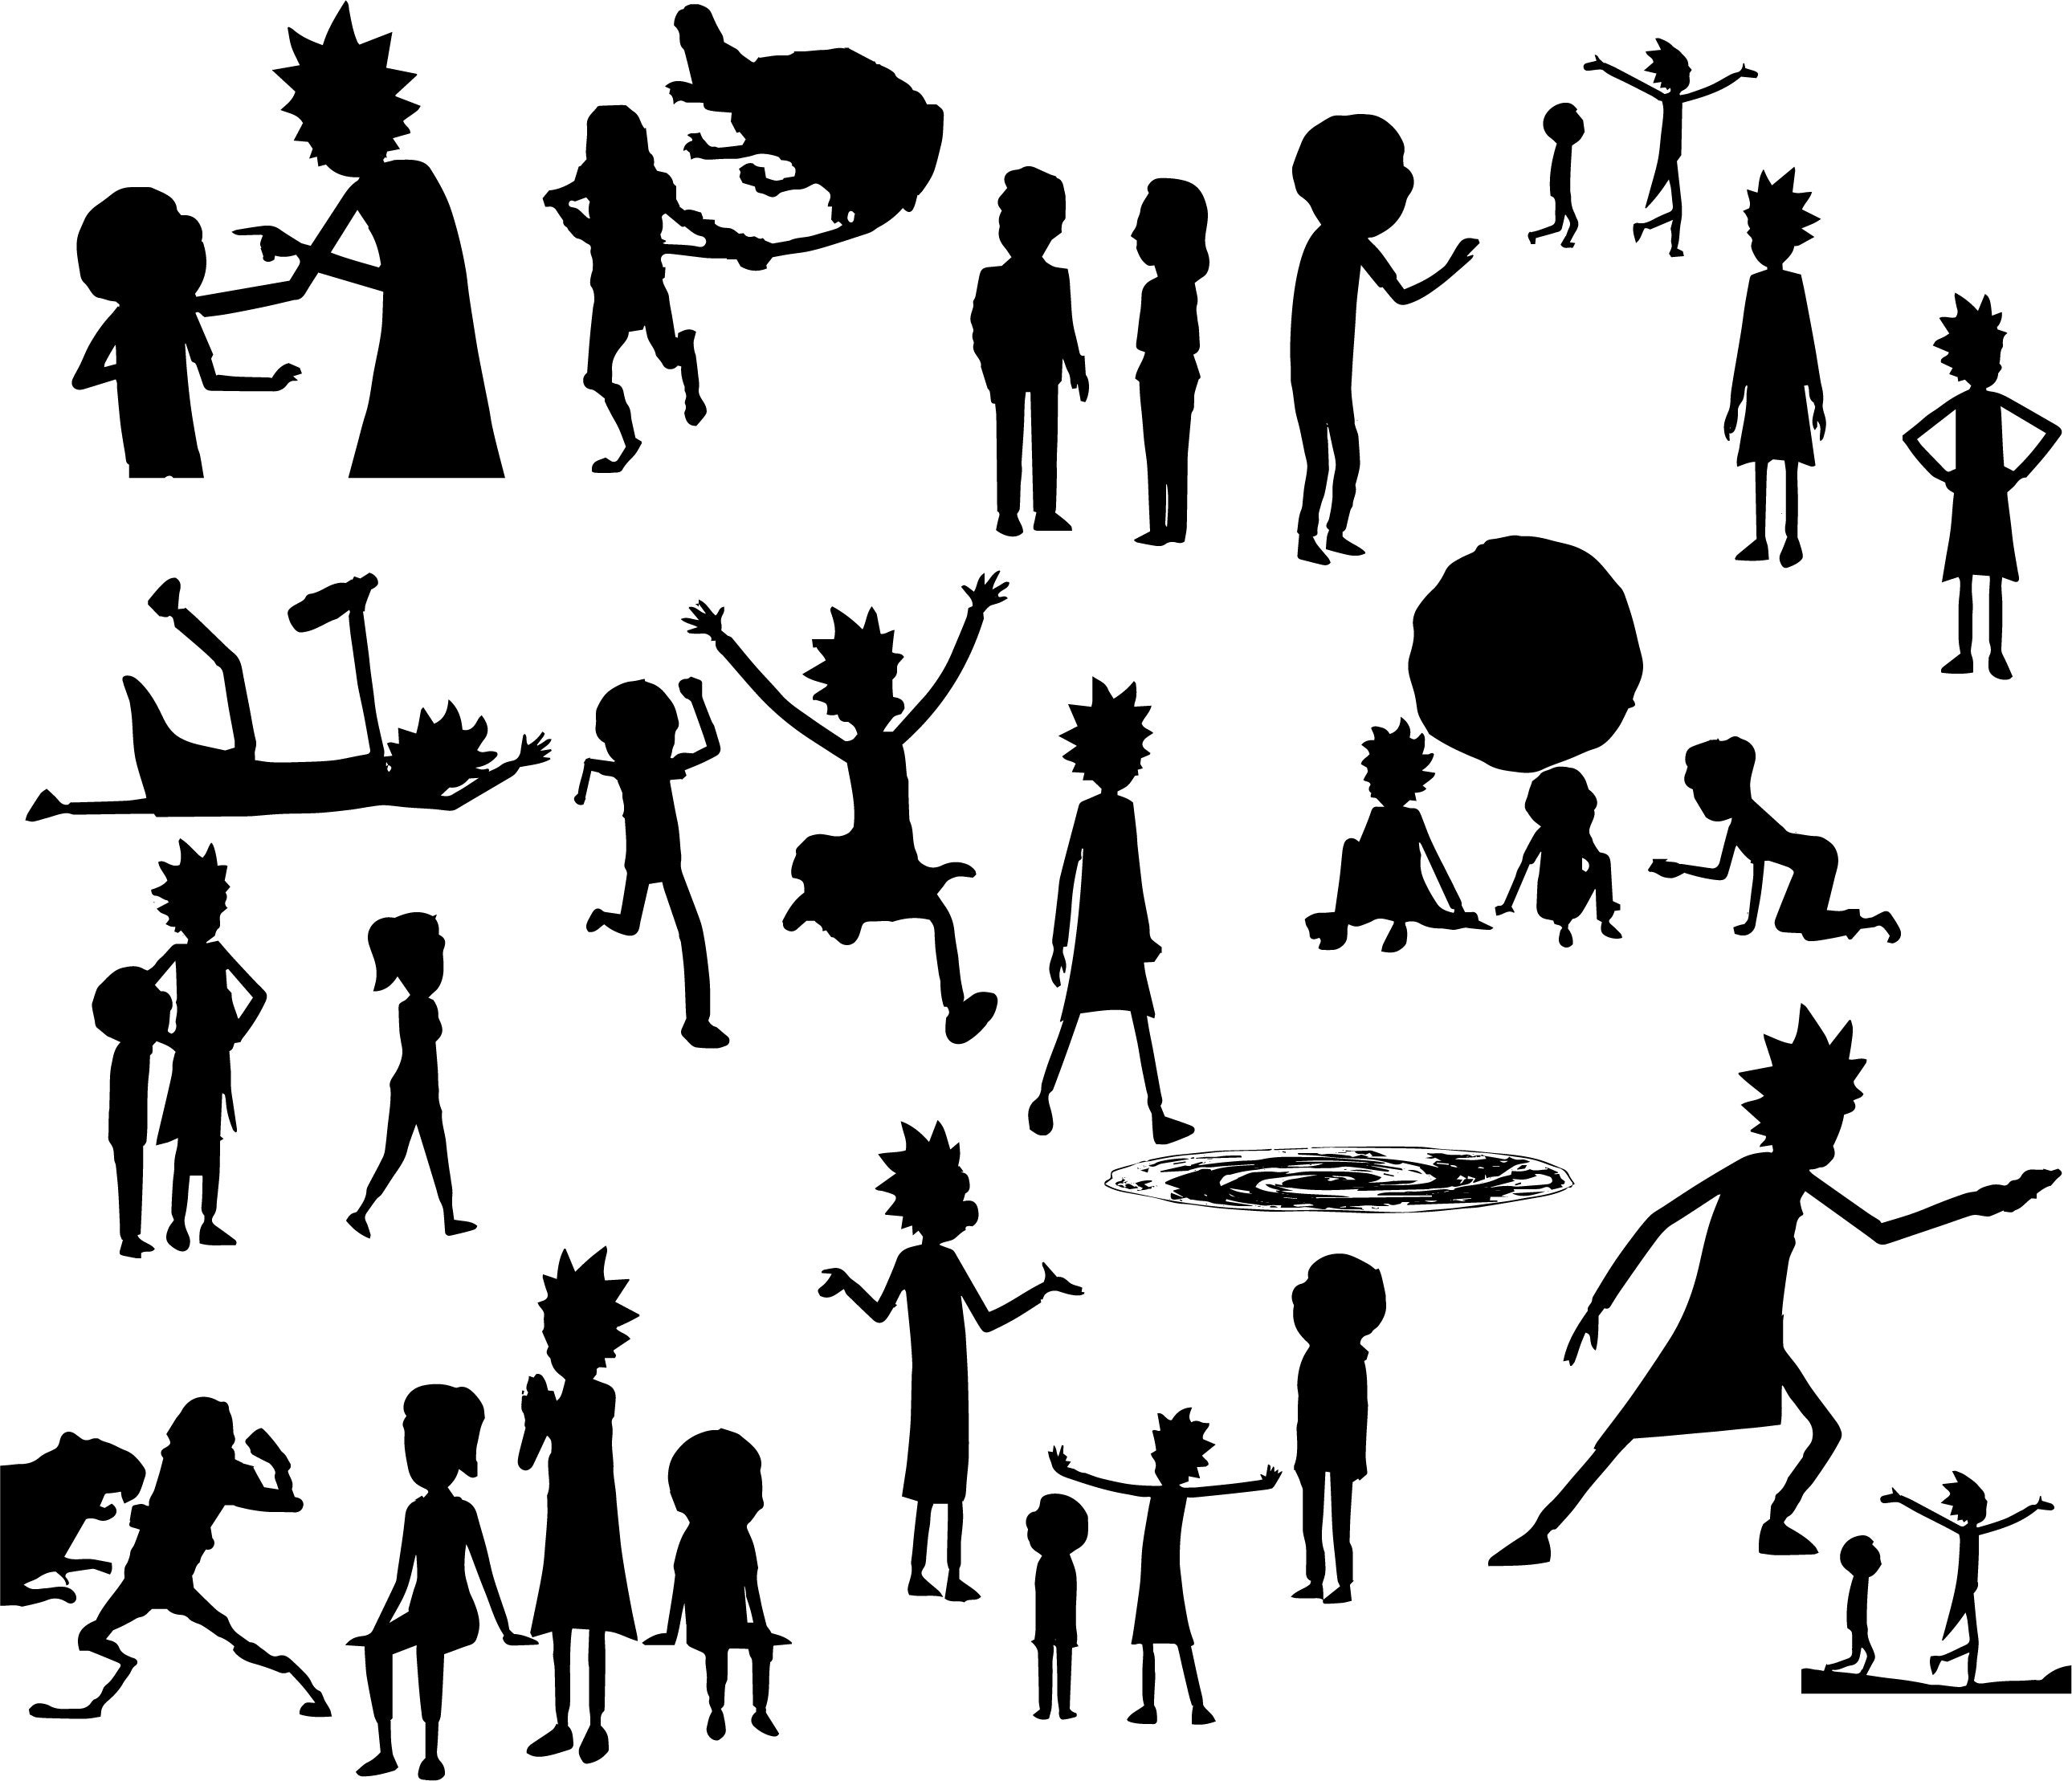 rick and morty silhouettes rick sanchez svg digital art download